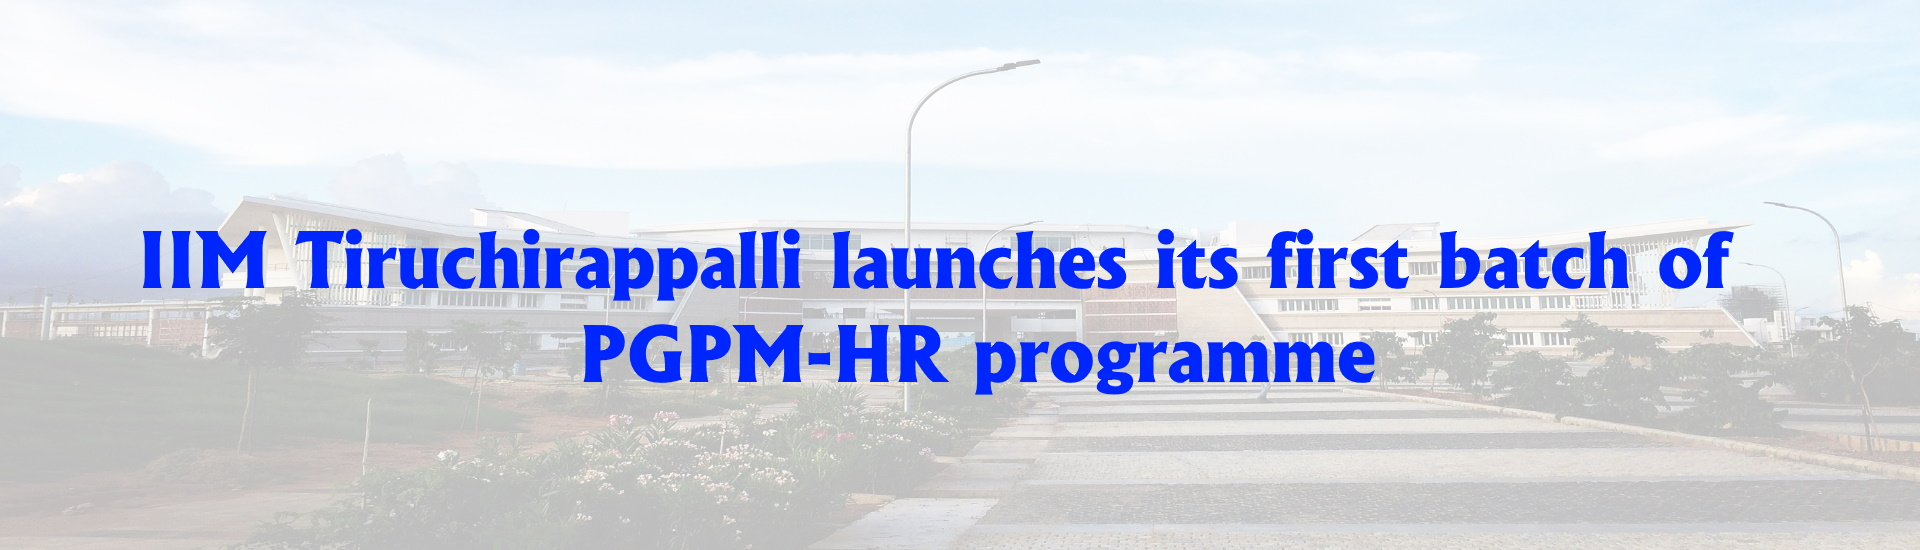 PGPM-HR Programme